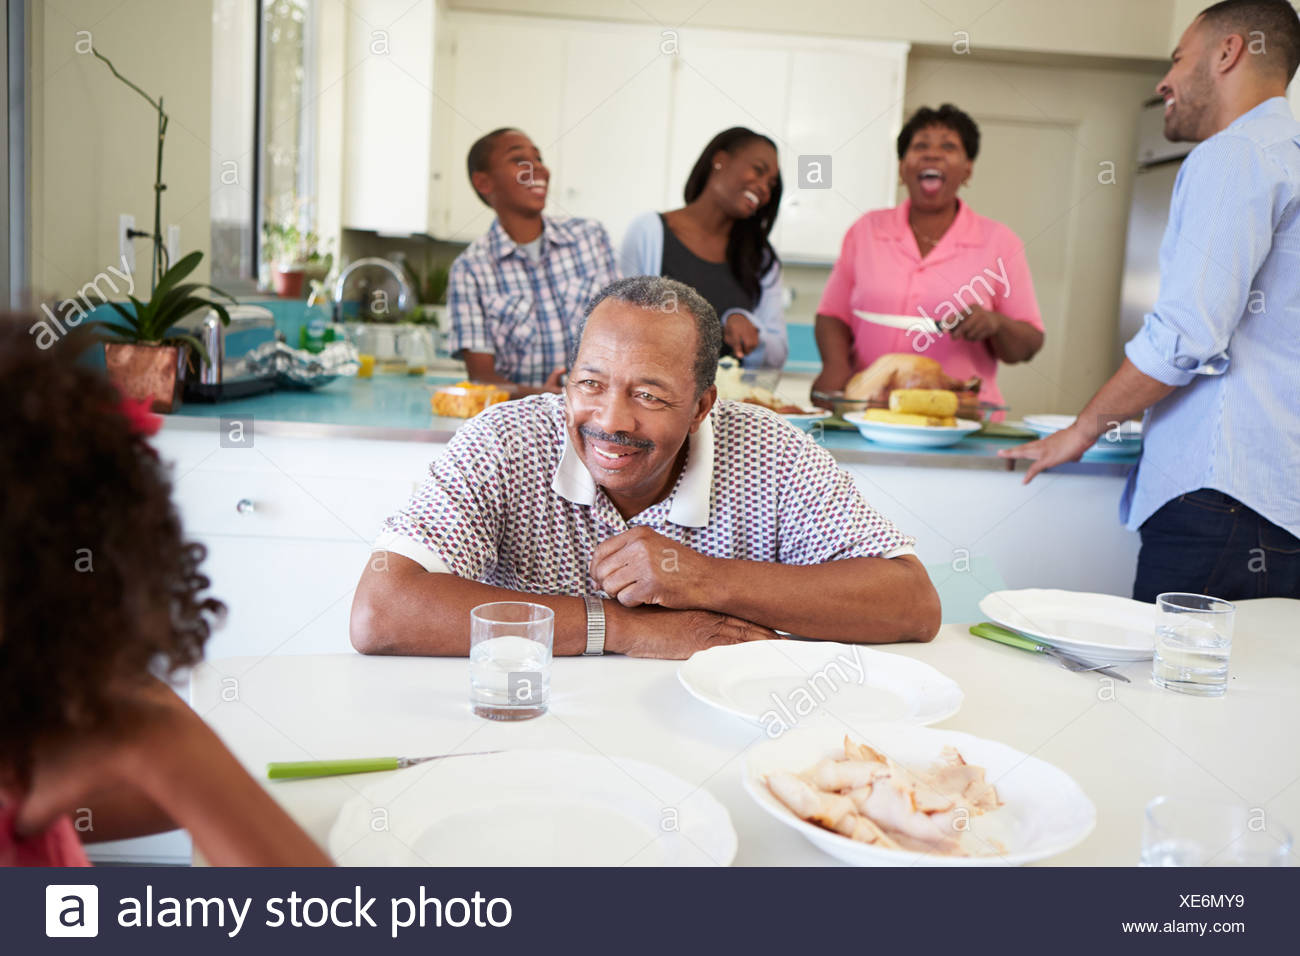 Multi-Generation Family Preparing For Meal At Home - Stock Image